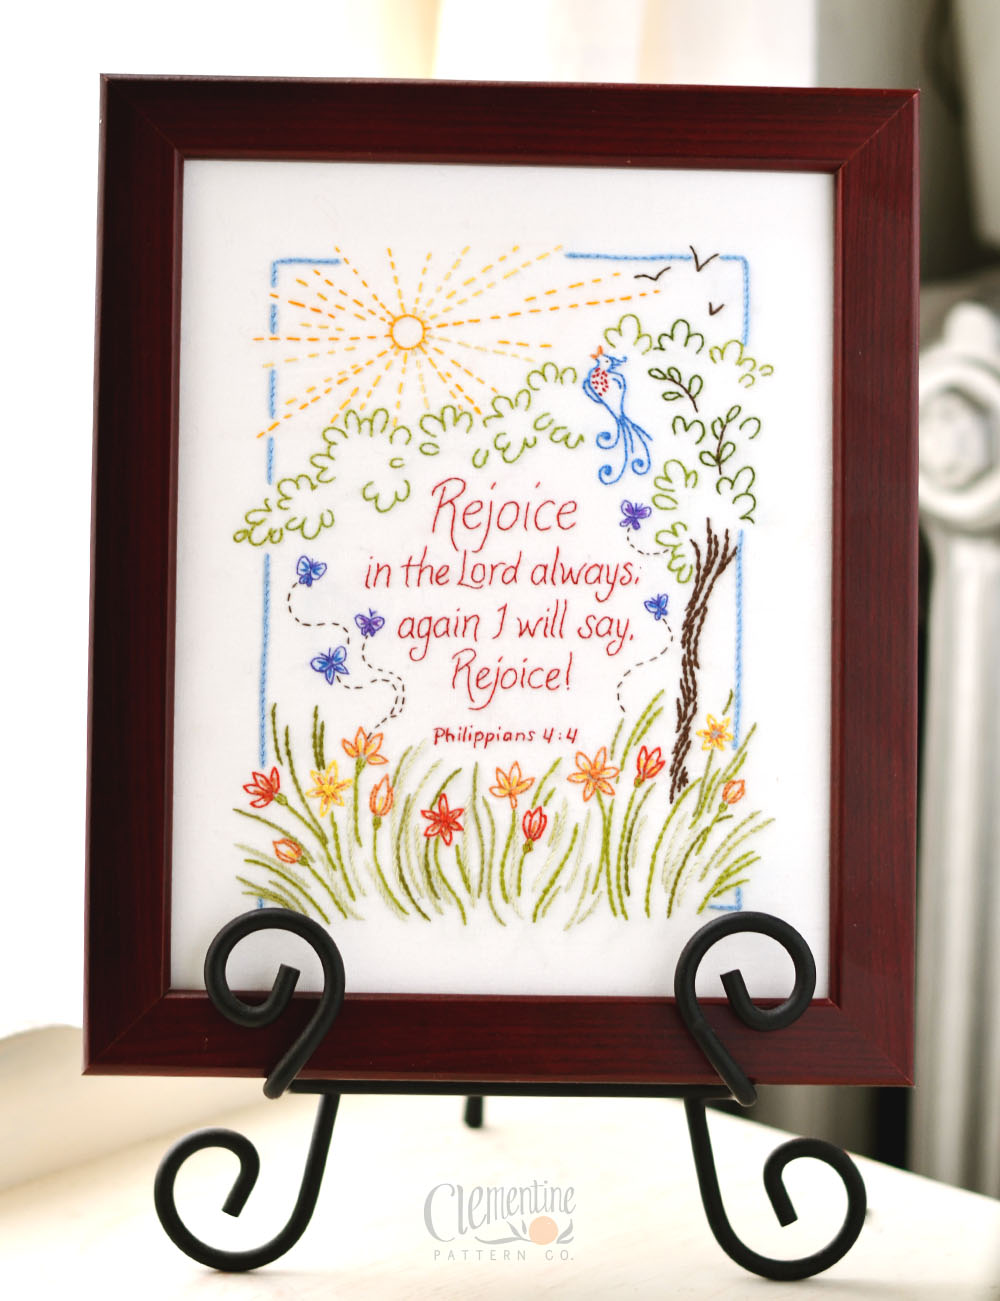 Rejoice-in-the-Lord-Embroidery-Clementine-Patterns